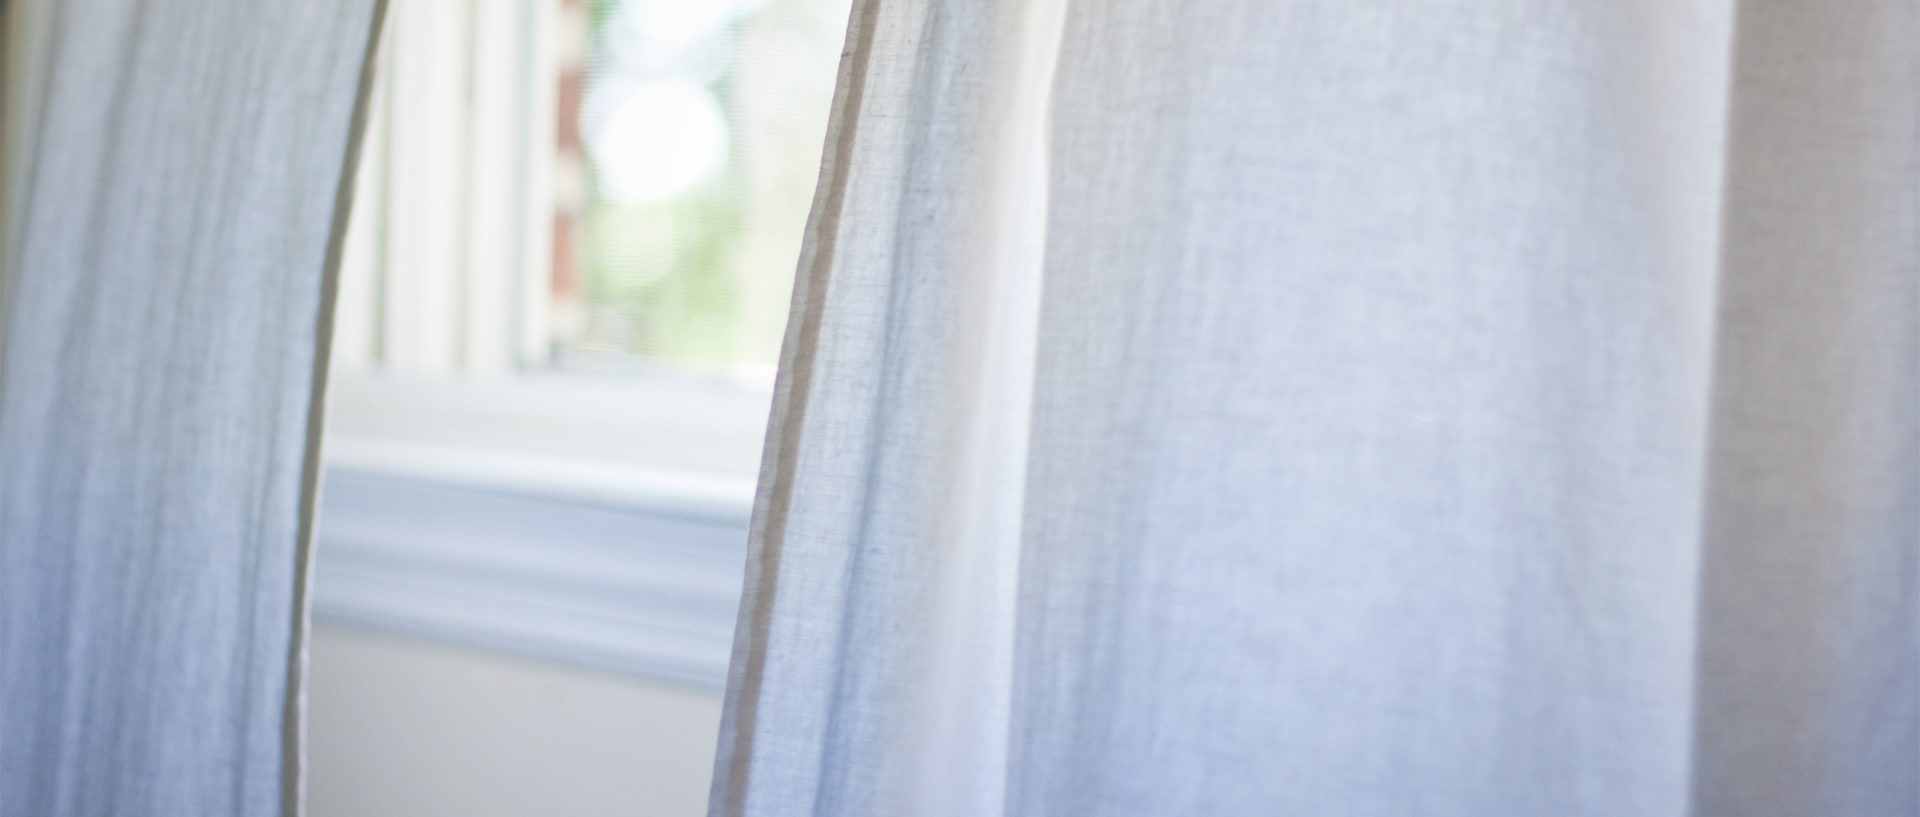 How to Clean Your Curtains - Consumer Reports